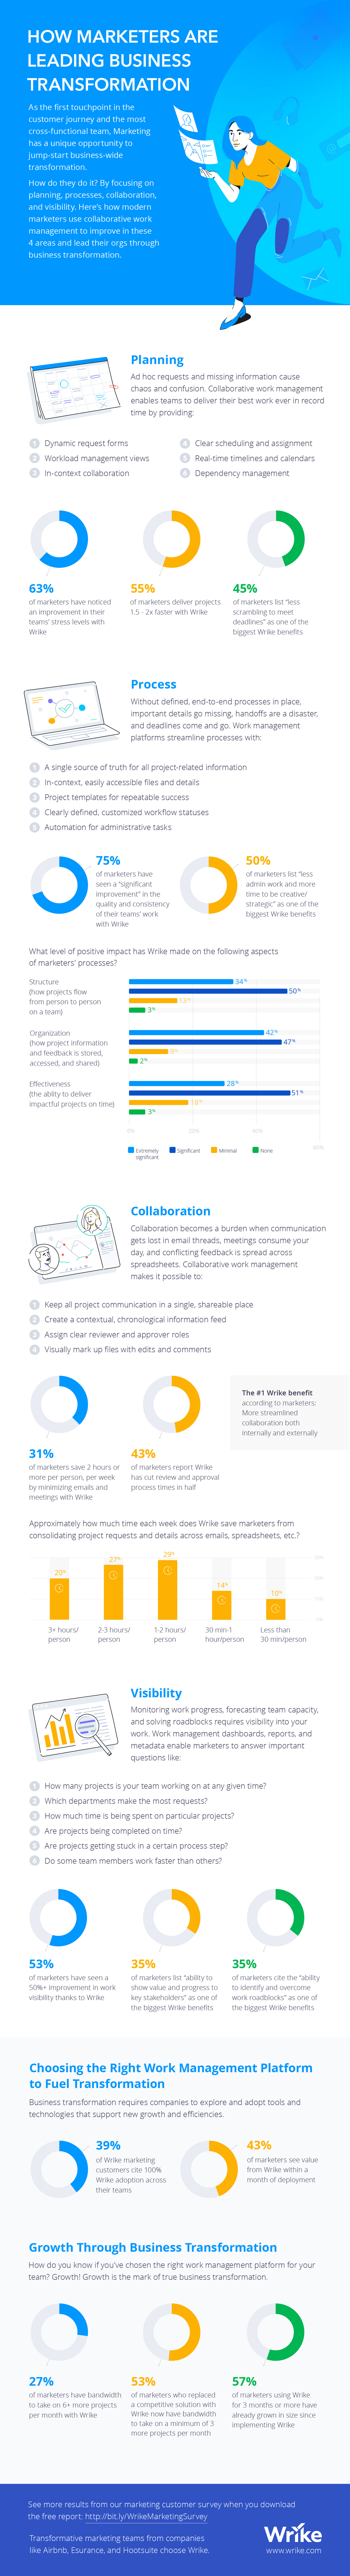 Marketing_Impact_Report_Infographic-02